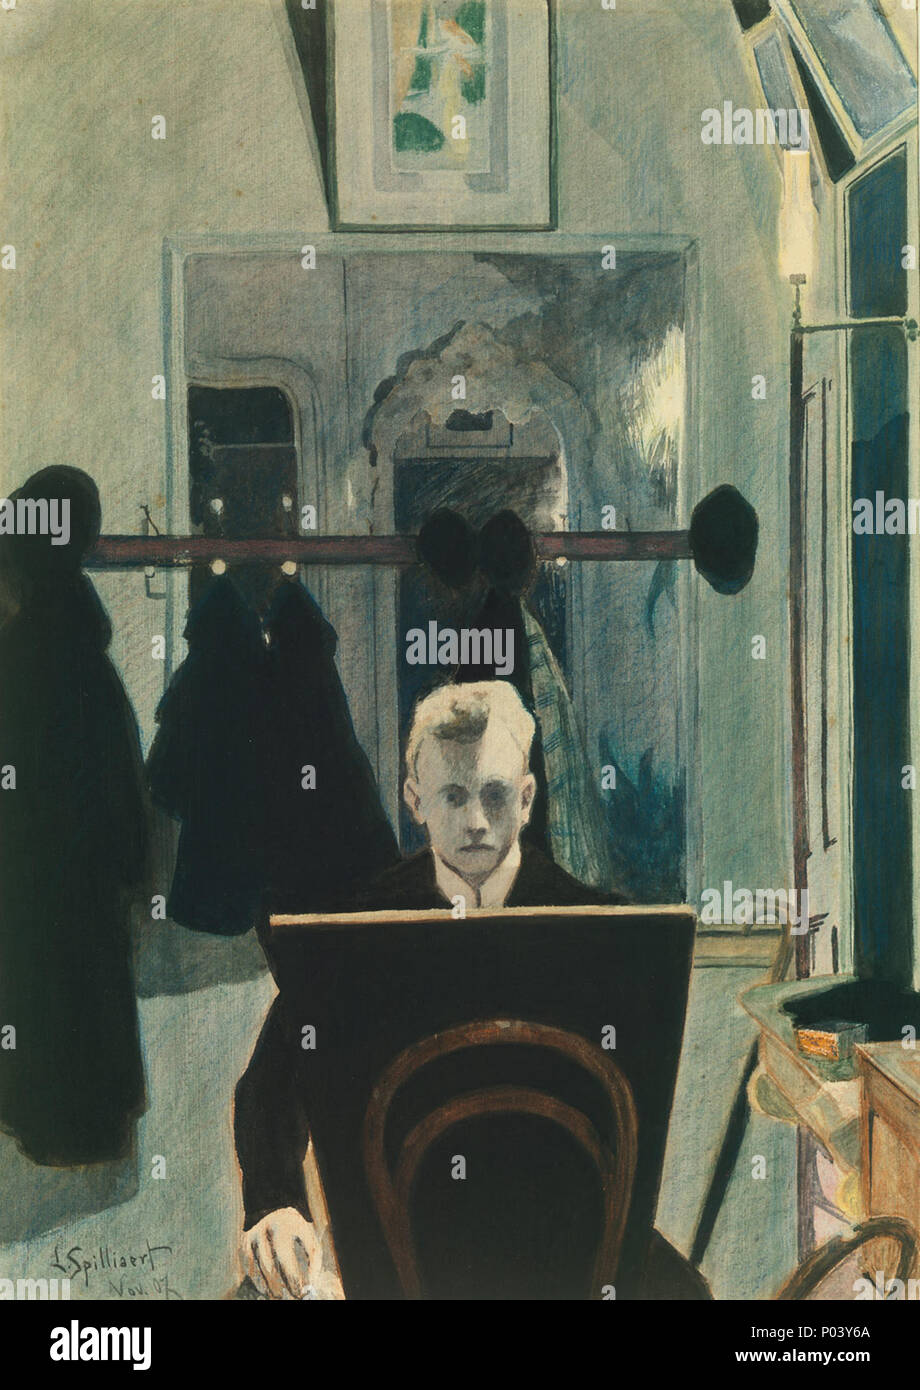 Working Title/Artist: Self-Portrait Department: Modern Art Culture/Period/Location:  HB/TOA Date Code: 11 Working Date: 1907 photography by mma 1980, transparency #2b scanned and retouched by film and media (jn) 8 2 04 67 Léon Spilliaert - Self Portrait - Met - 1980.208 - Stock Image